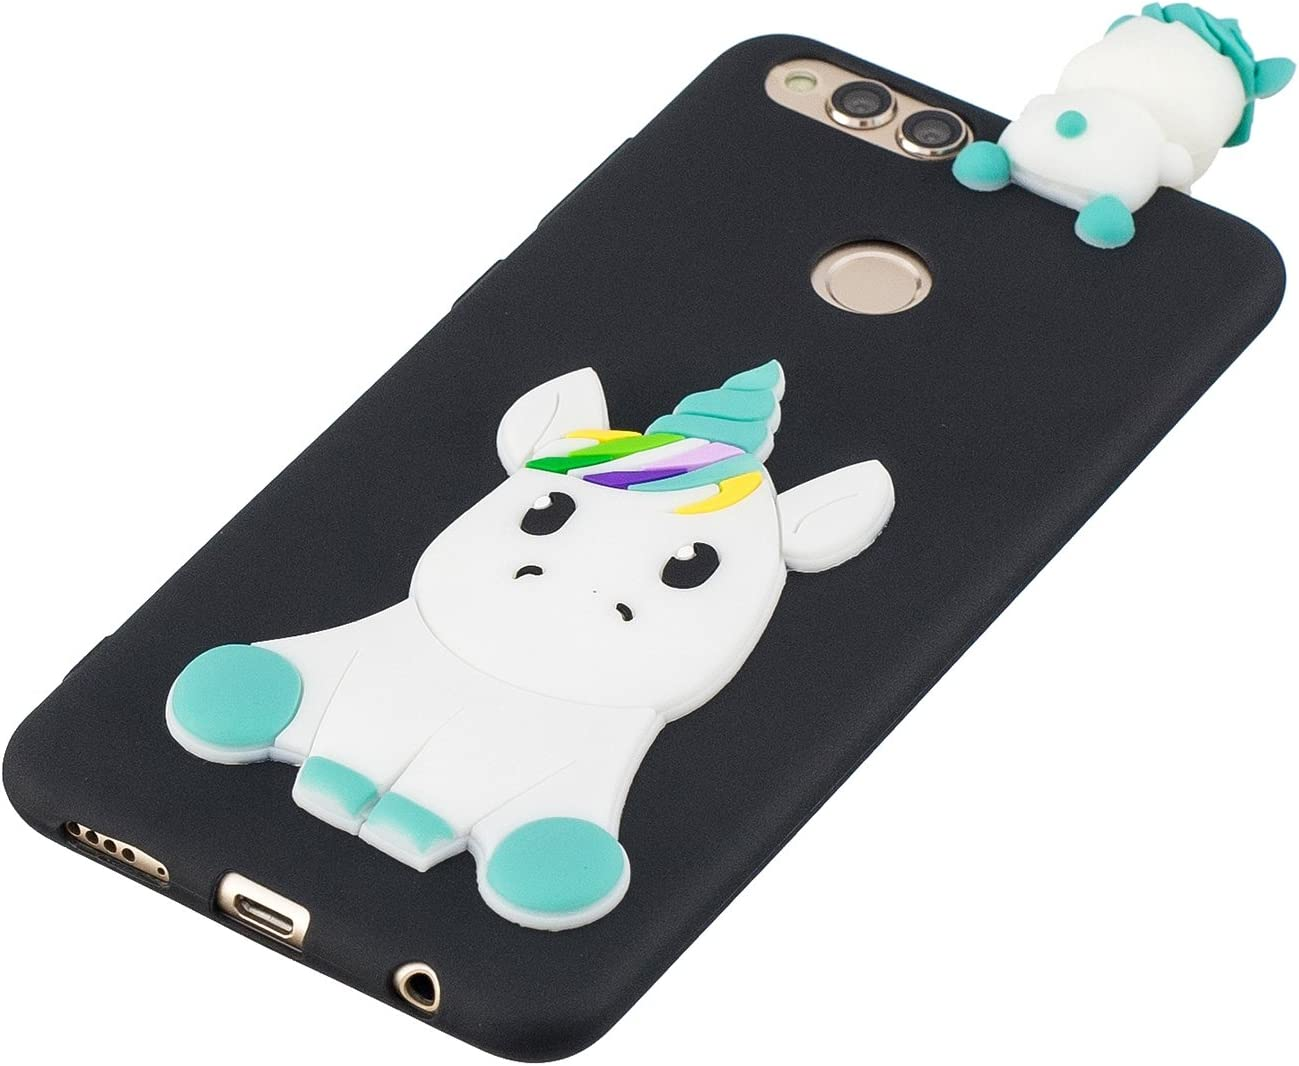 Coque Huawei Honor 7X Silicone Coque pour Huawei Honor 7X Slim Protection Housse Licorne Verte Klassikaline Coque Honor 7X